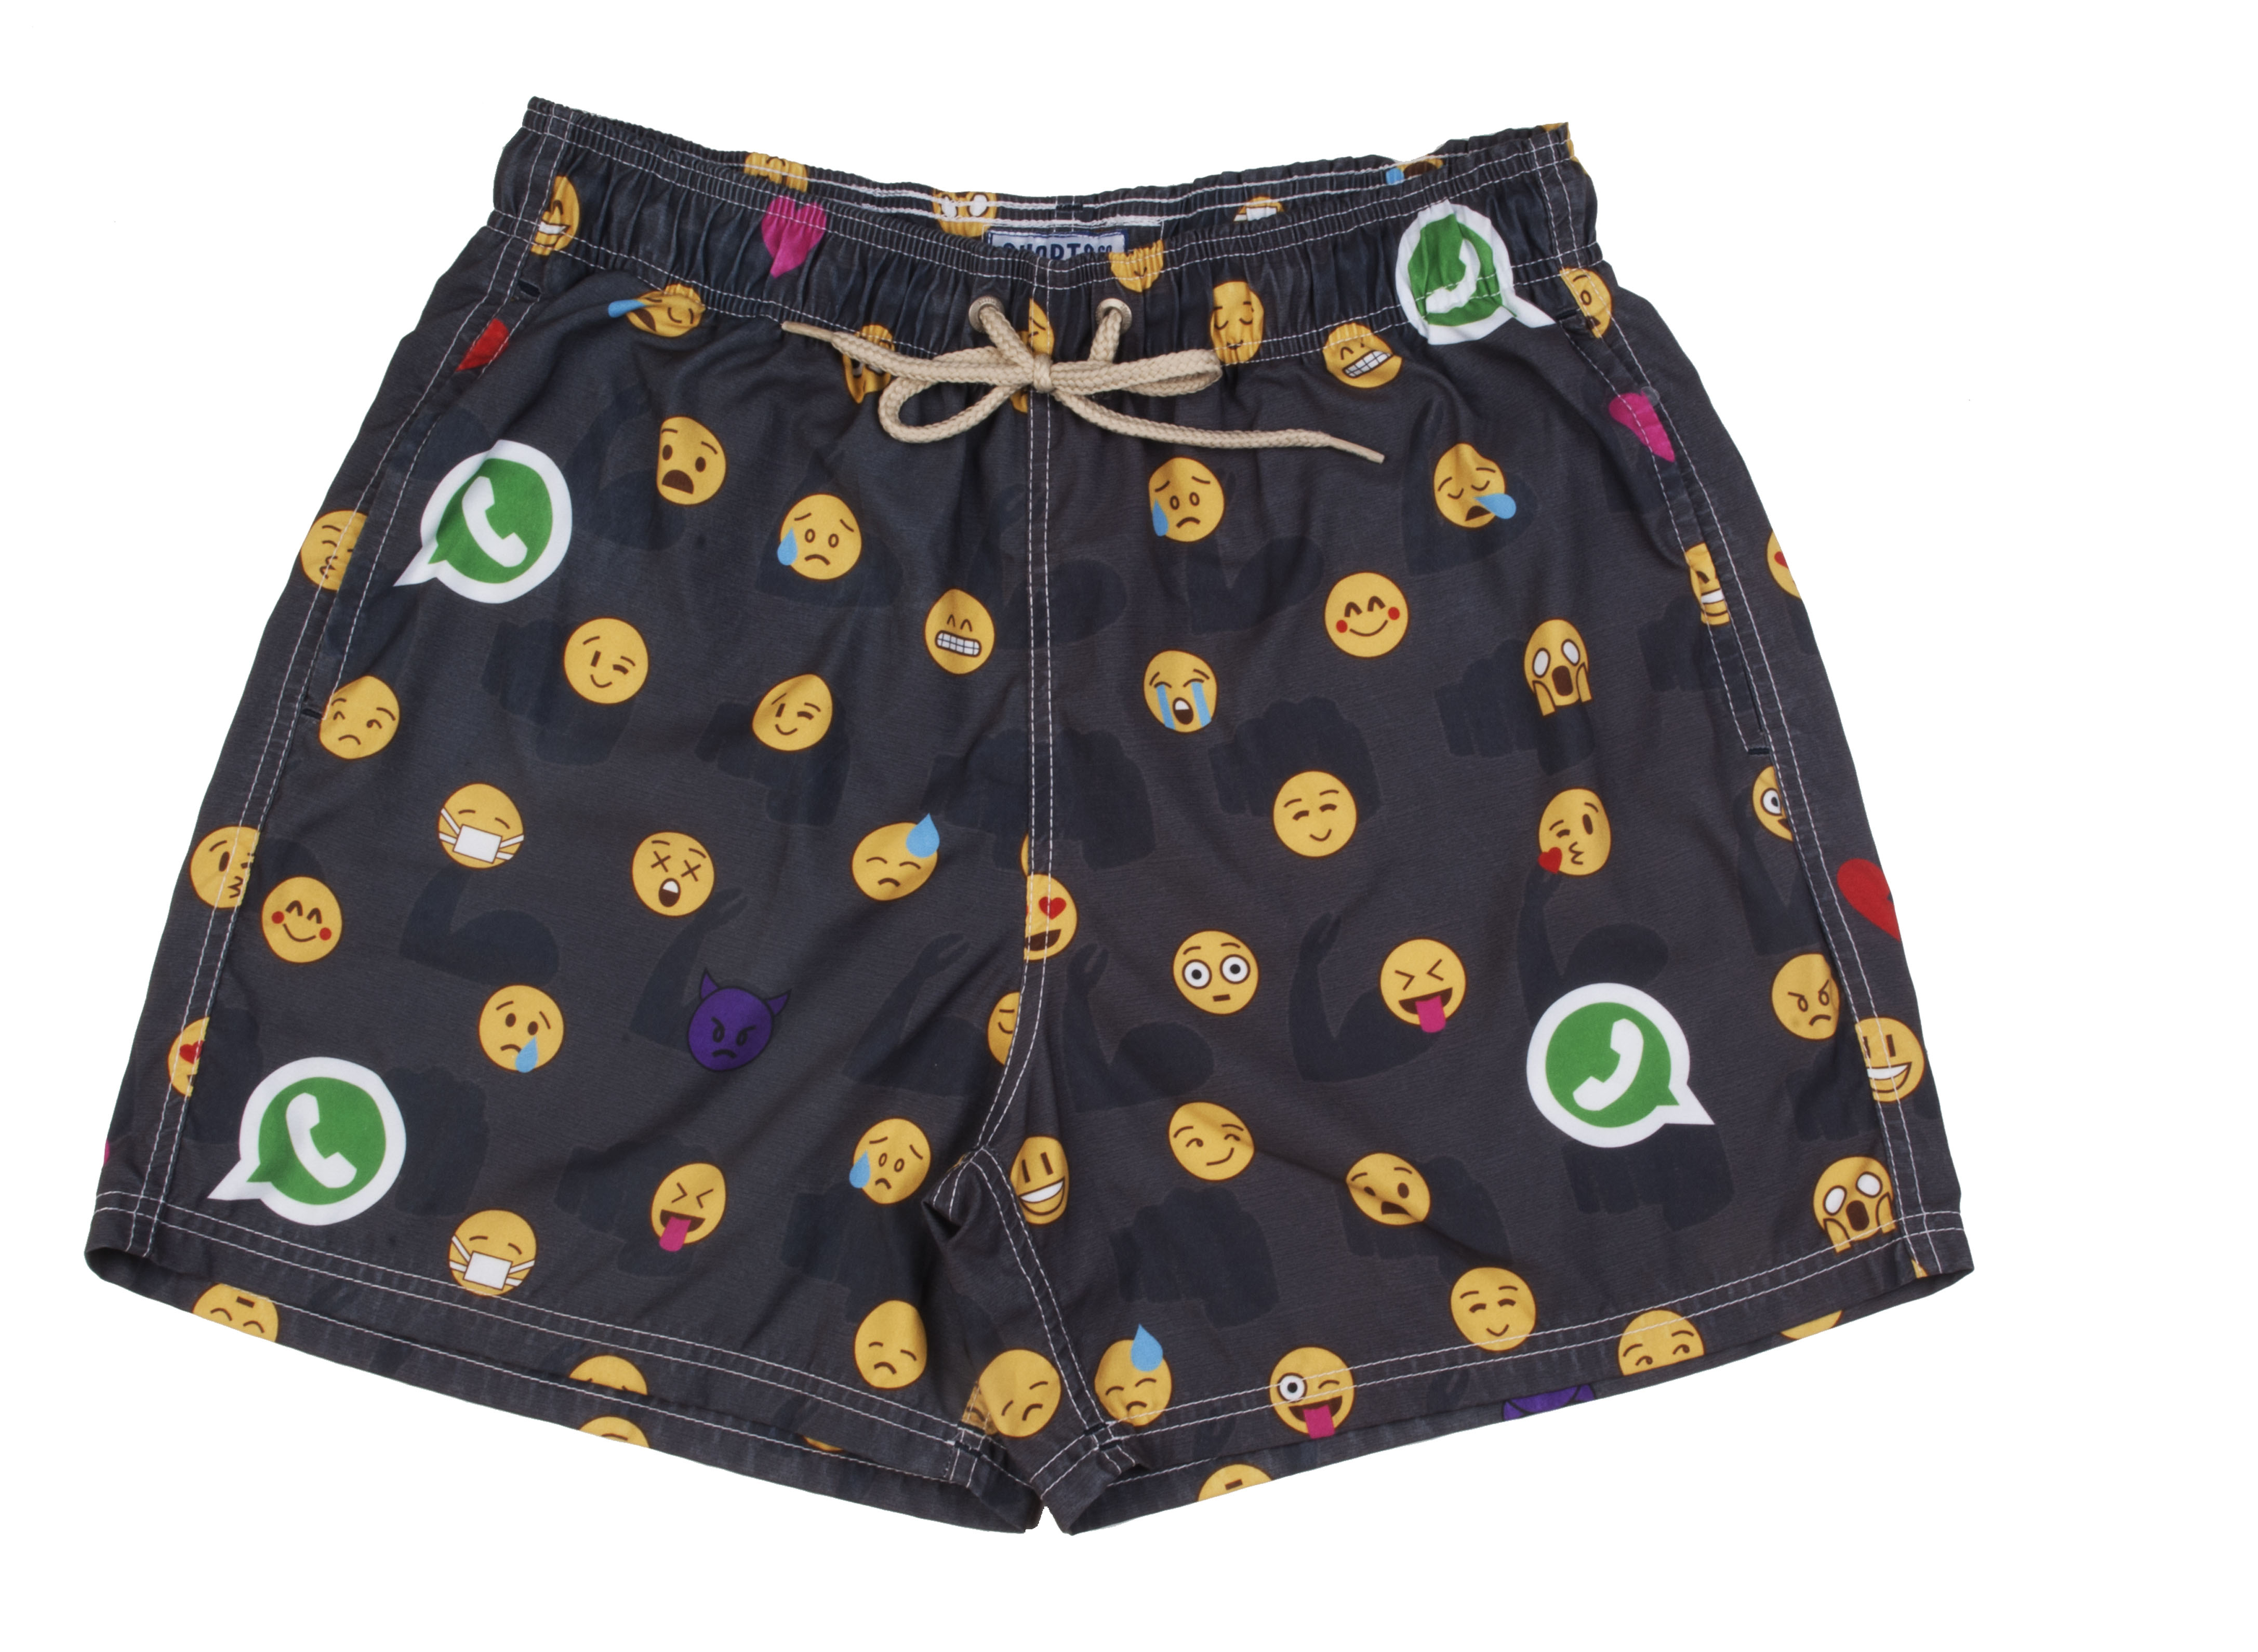 SHORTS.CO - ADULTO R$ 239.90 - INFANTIL R$ 169.90 (12)